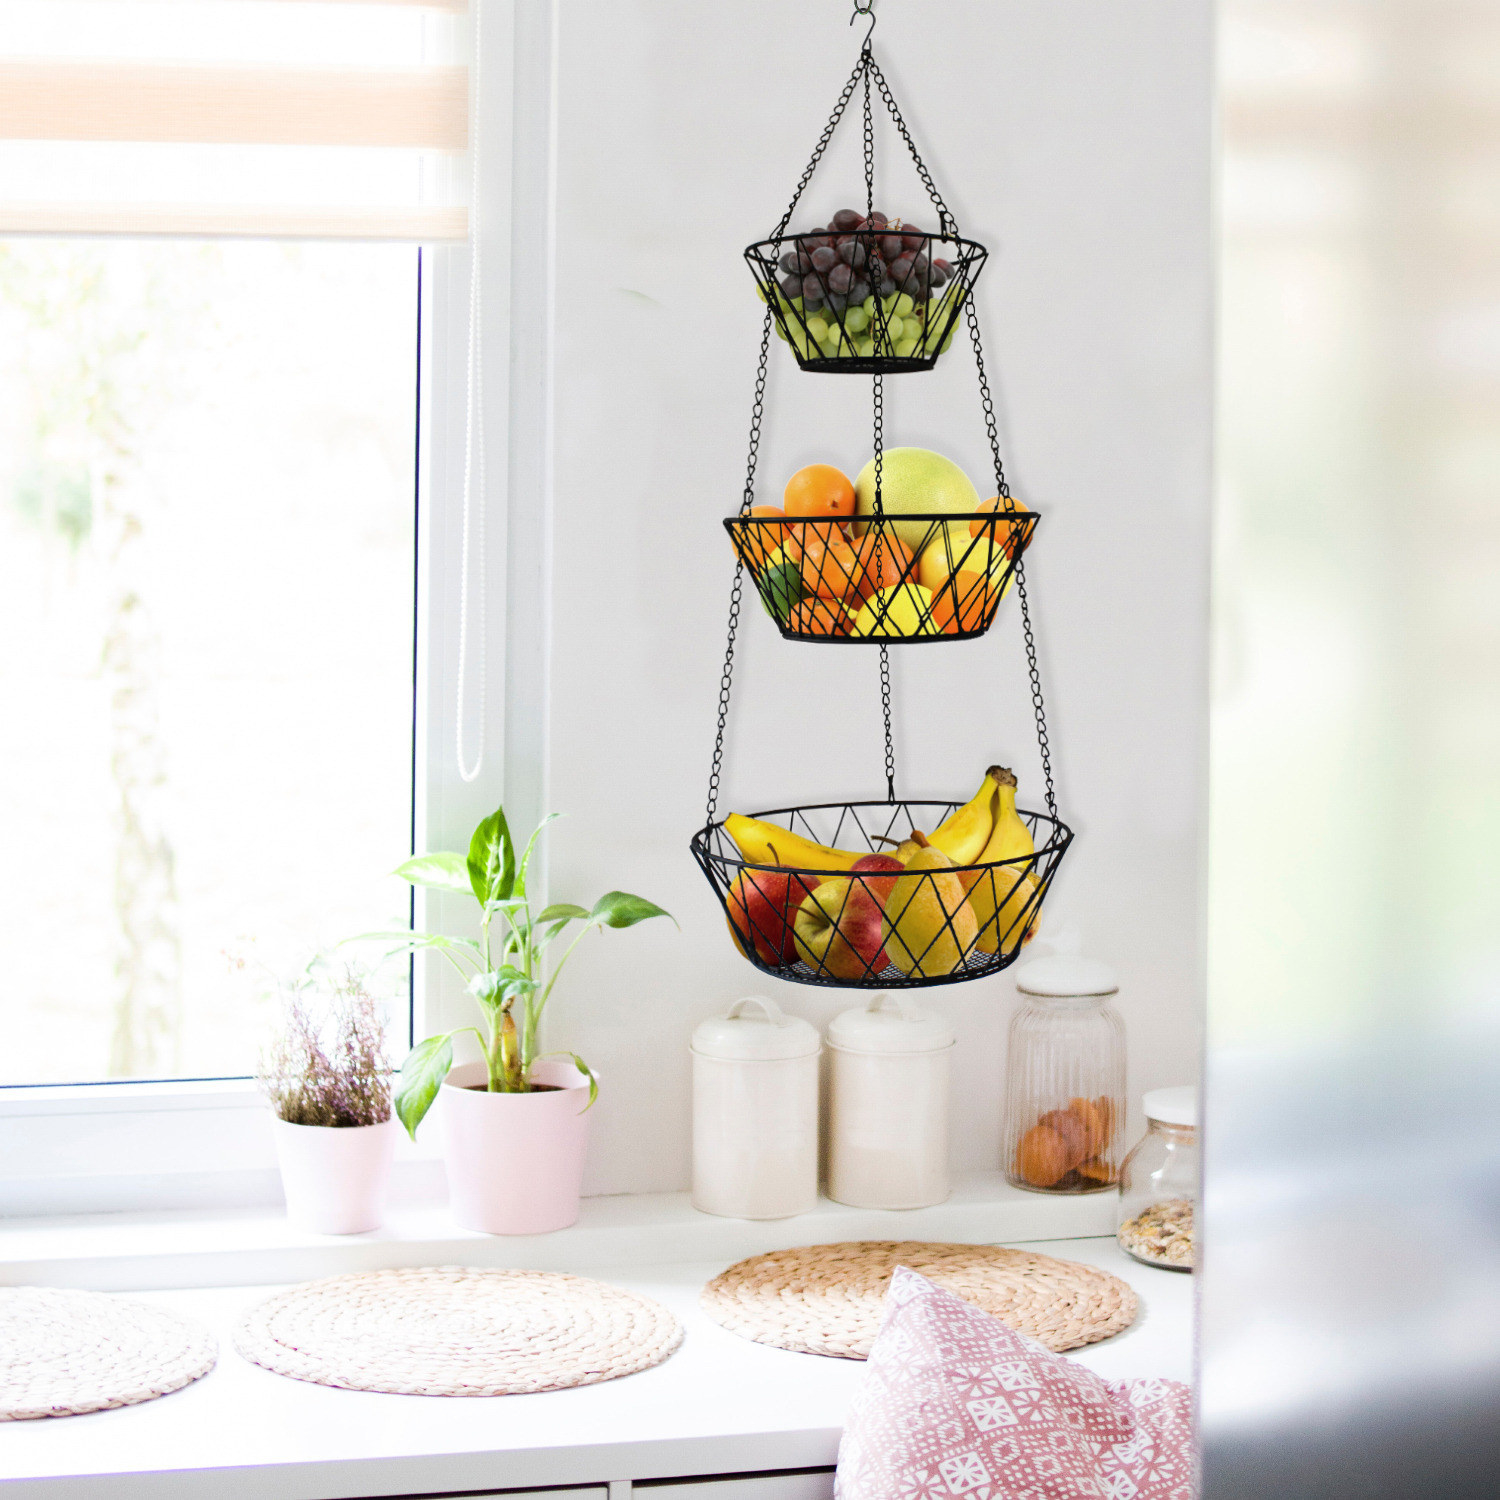 Black 3-tier hanging basket